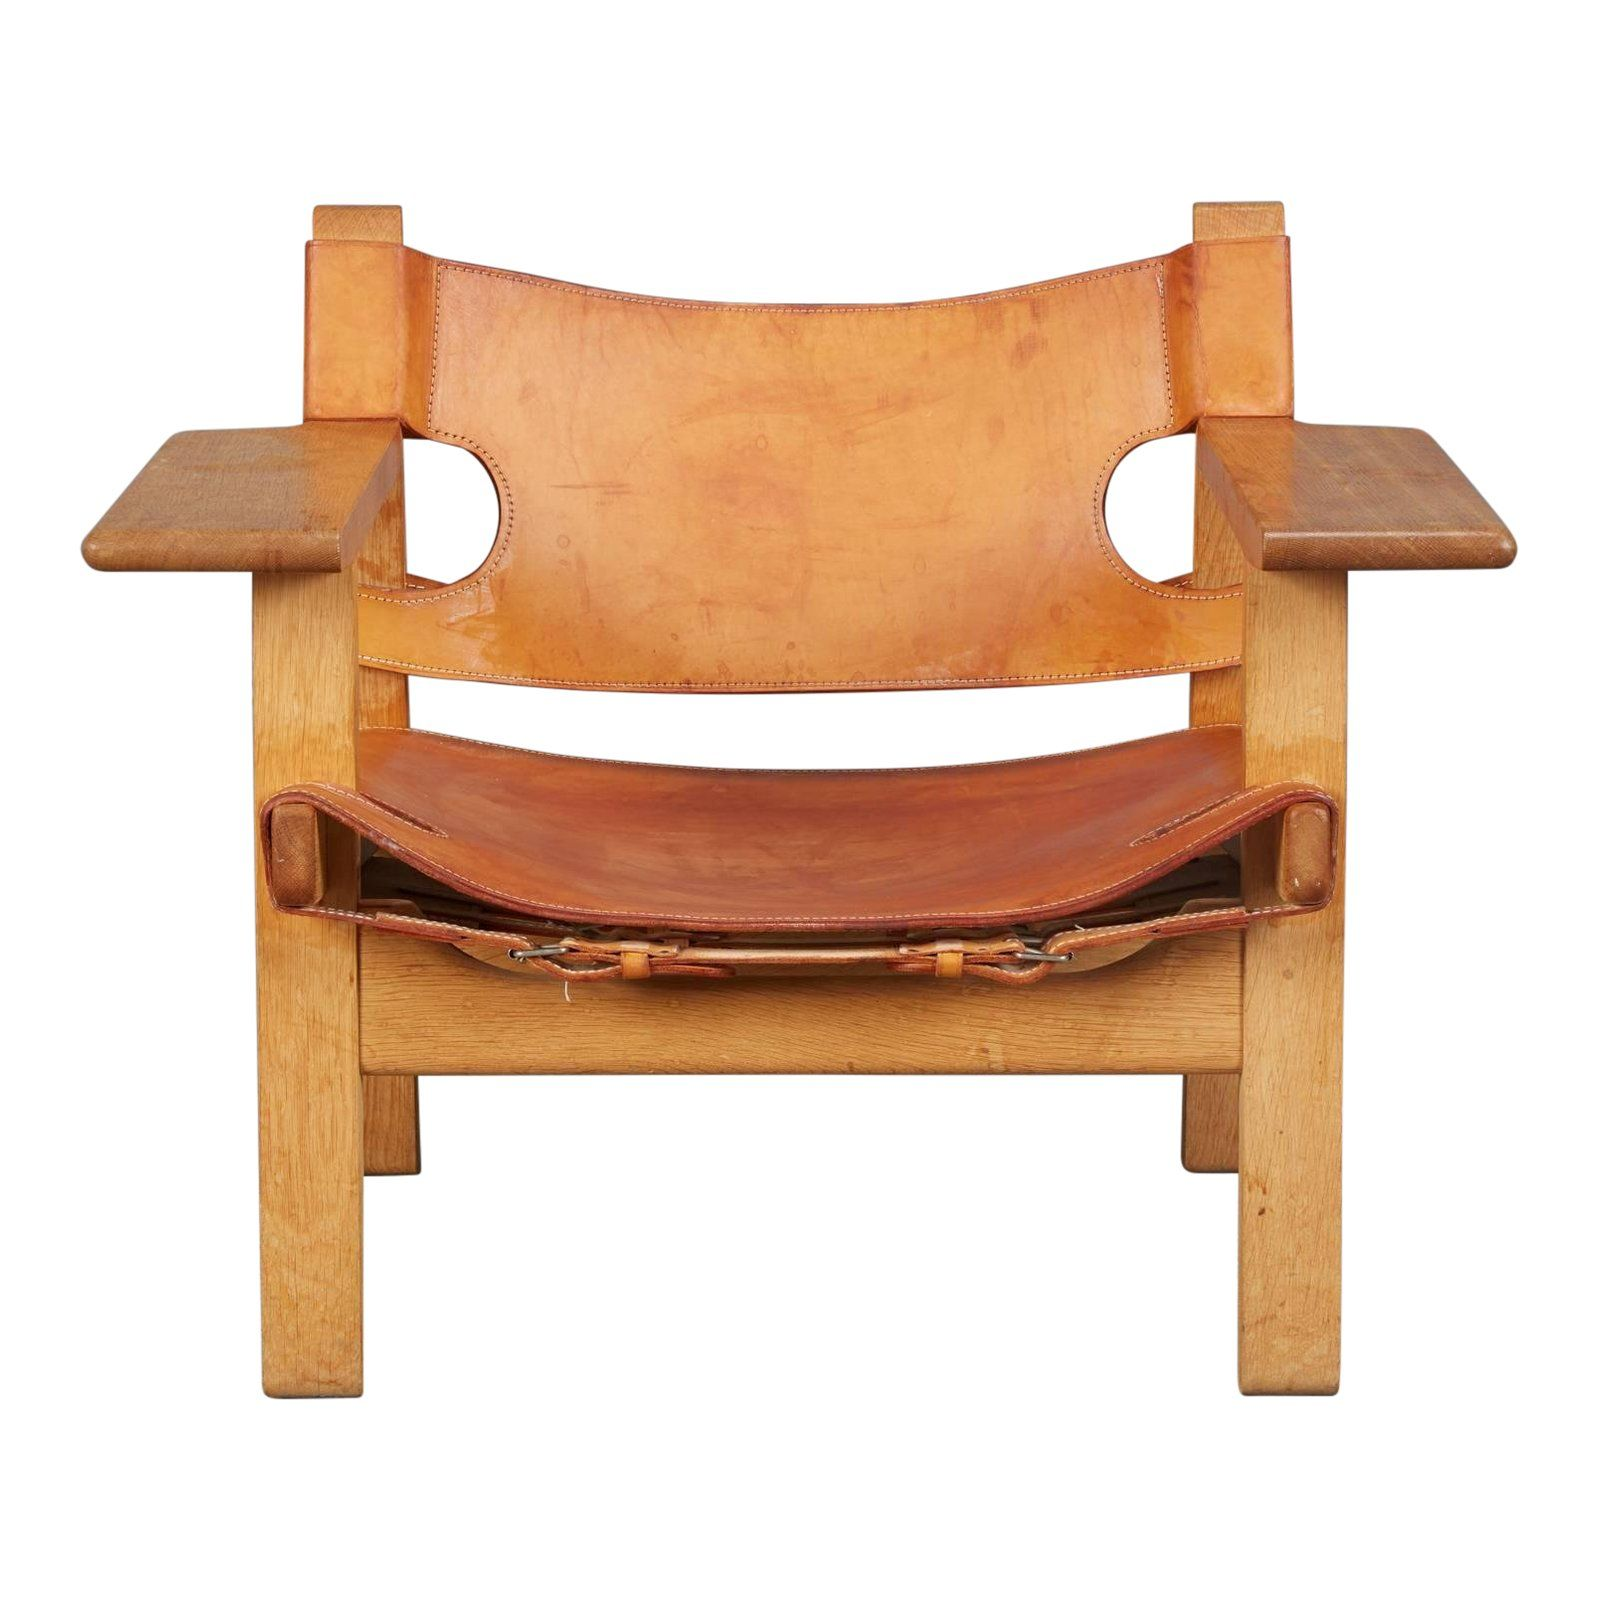 Spanish Chair By Borge Mogensen For Fredericia Furniture Furniture Apartment Furniture Transforming Furniture